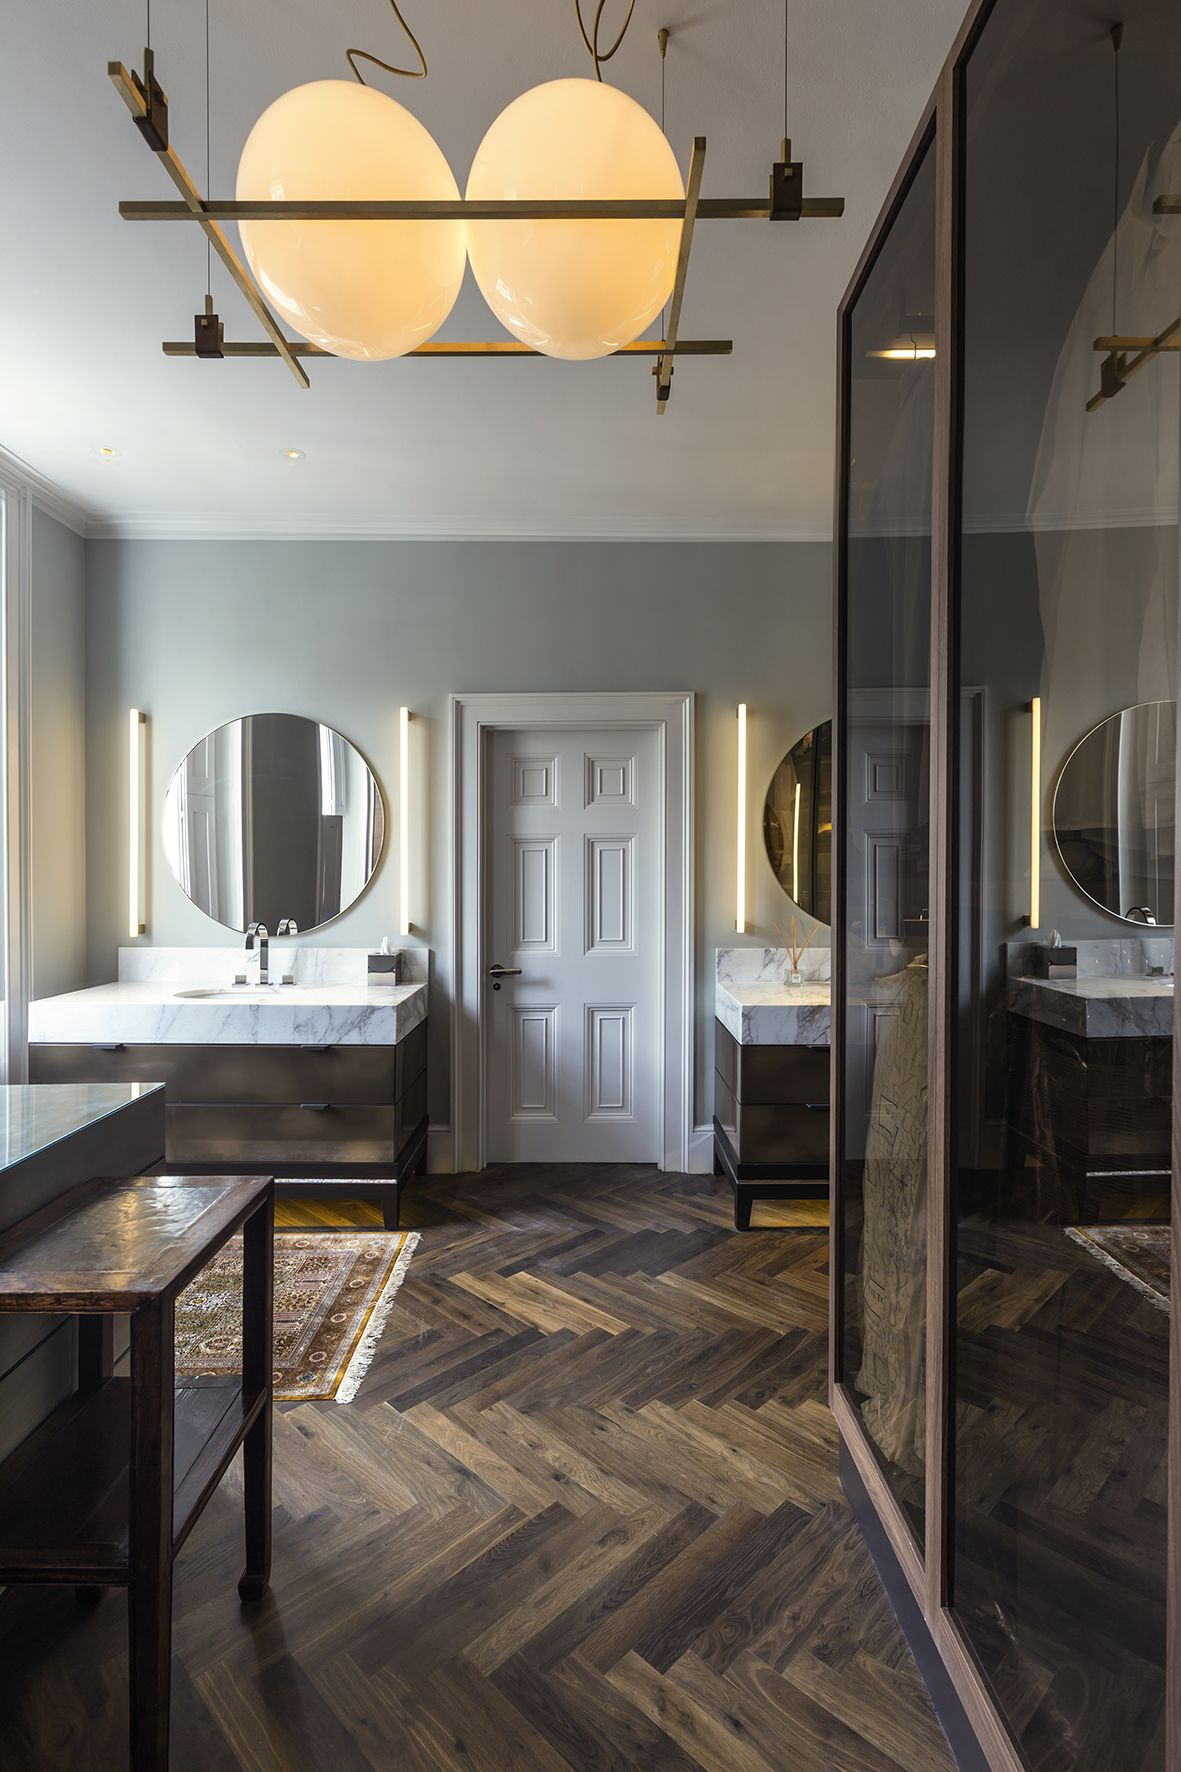 Master Bathroom Interior Of The Harley Street, London Residential Project